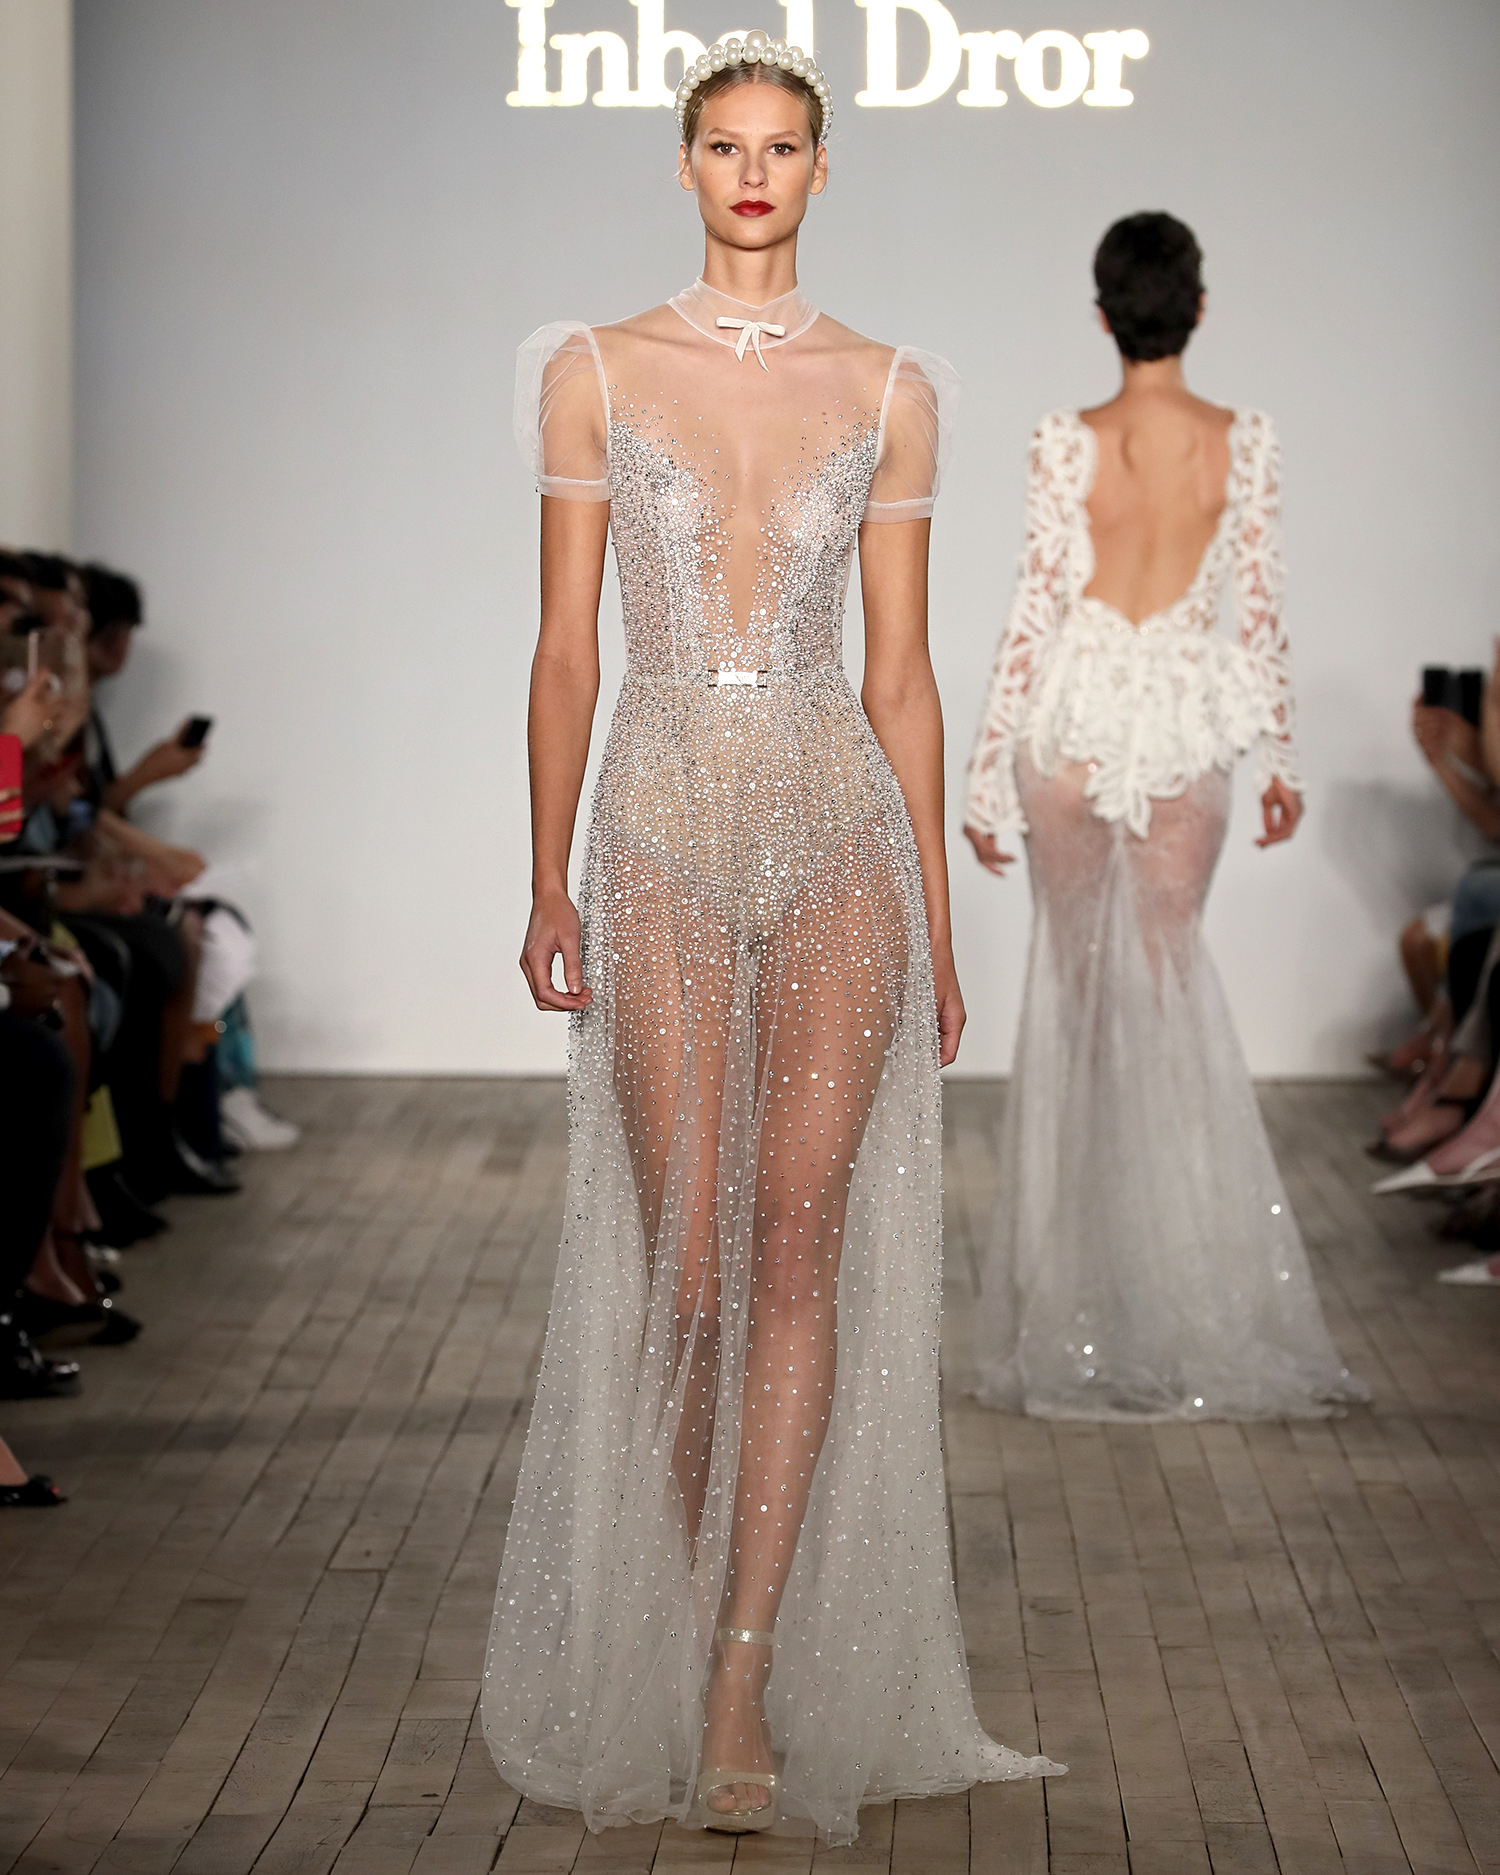 inbal dror wedding dress high illusion neck with sheer beaded overlay